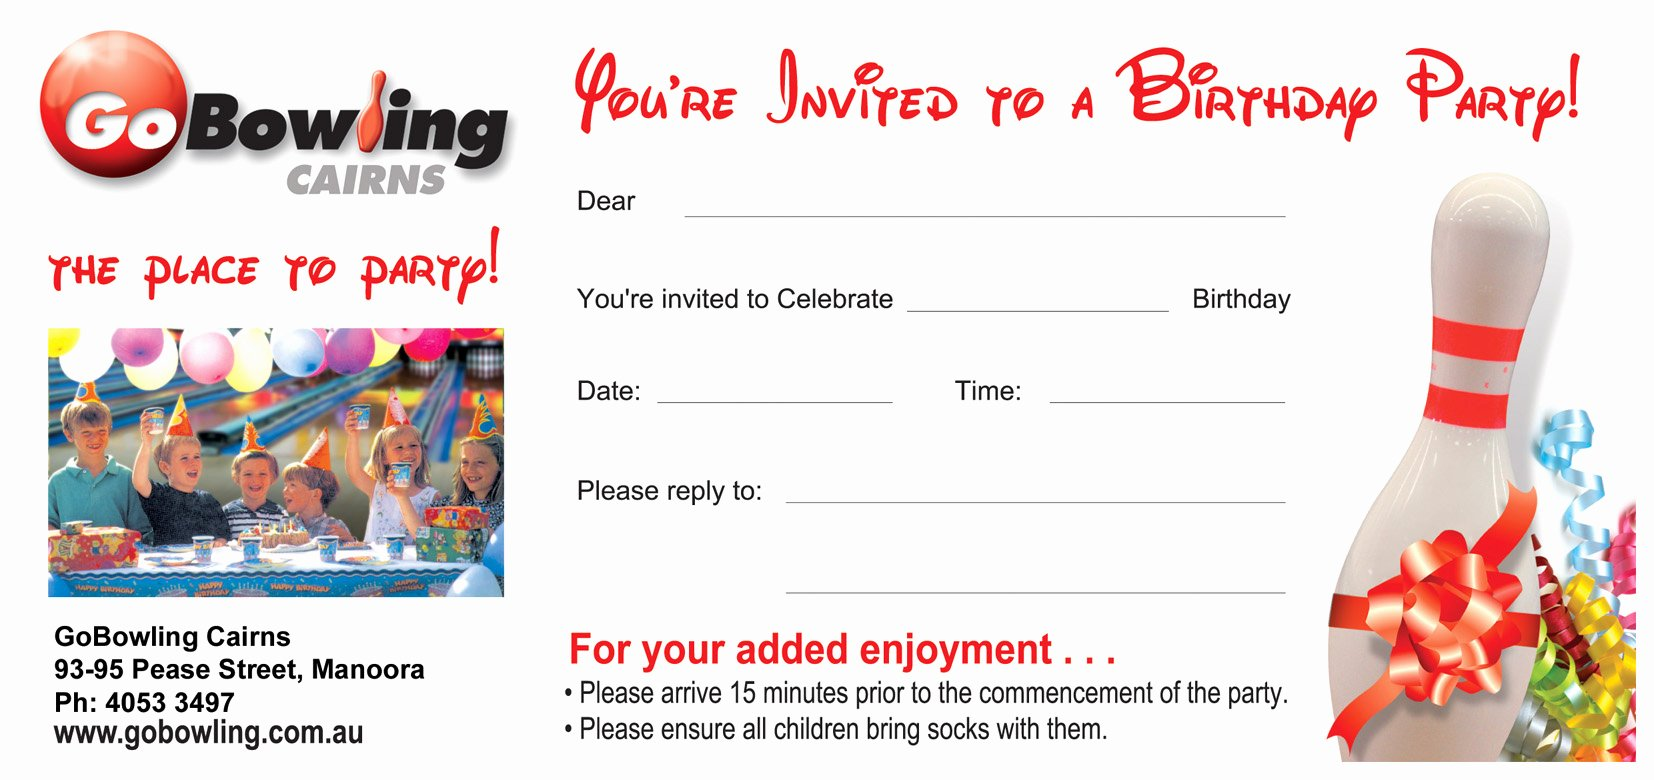 Bowling Party Invitation Template Inspirational Bowling Party Invitations Templates Ideas Bowling Party